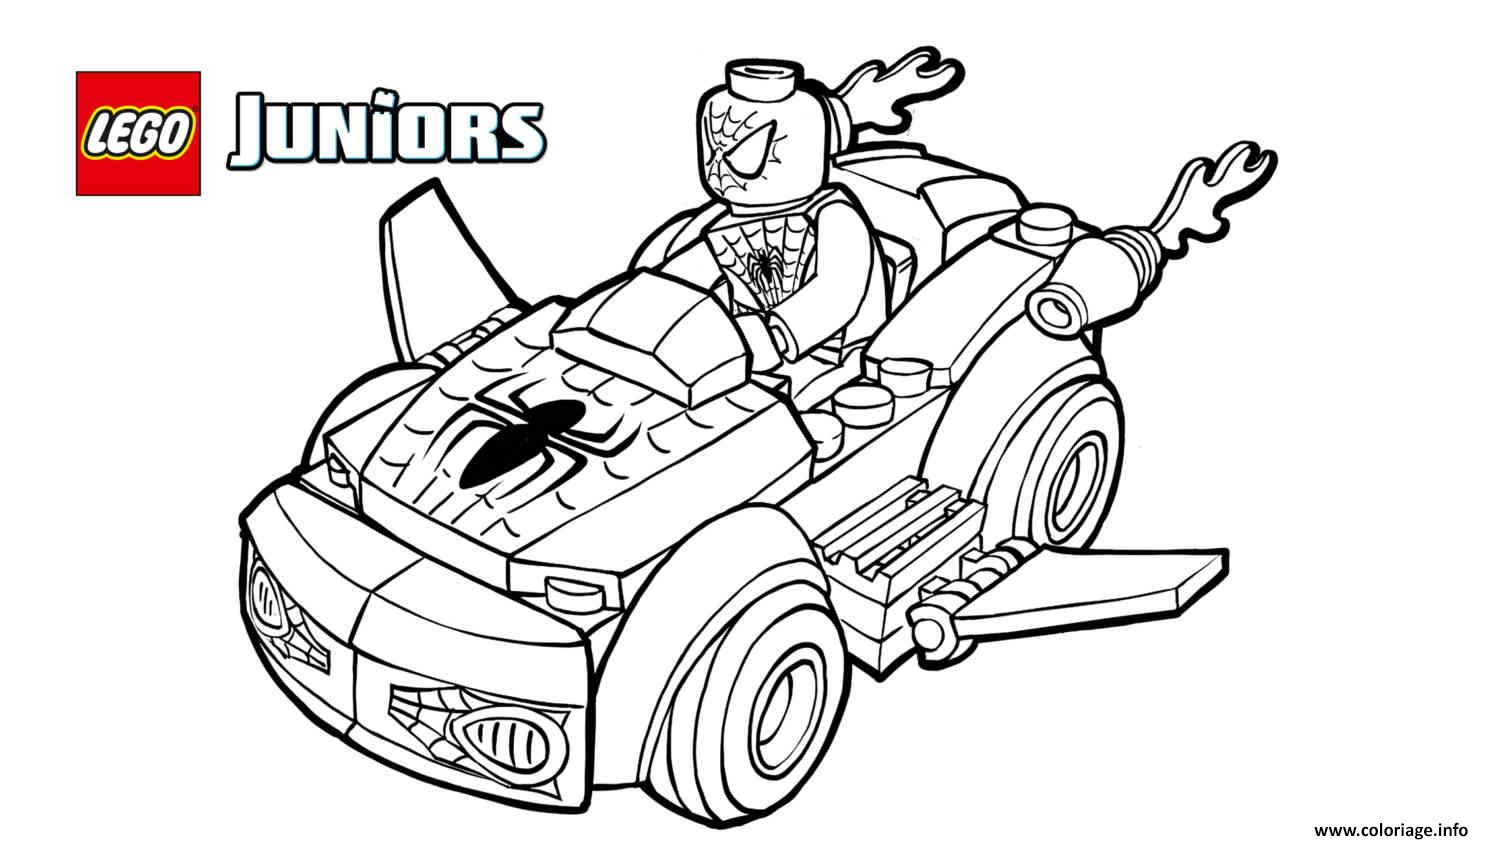 Coloriage lego spiderman 2 voiture lego - Coloriage spiderman imprimer ...